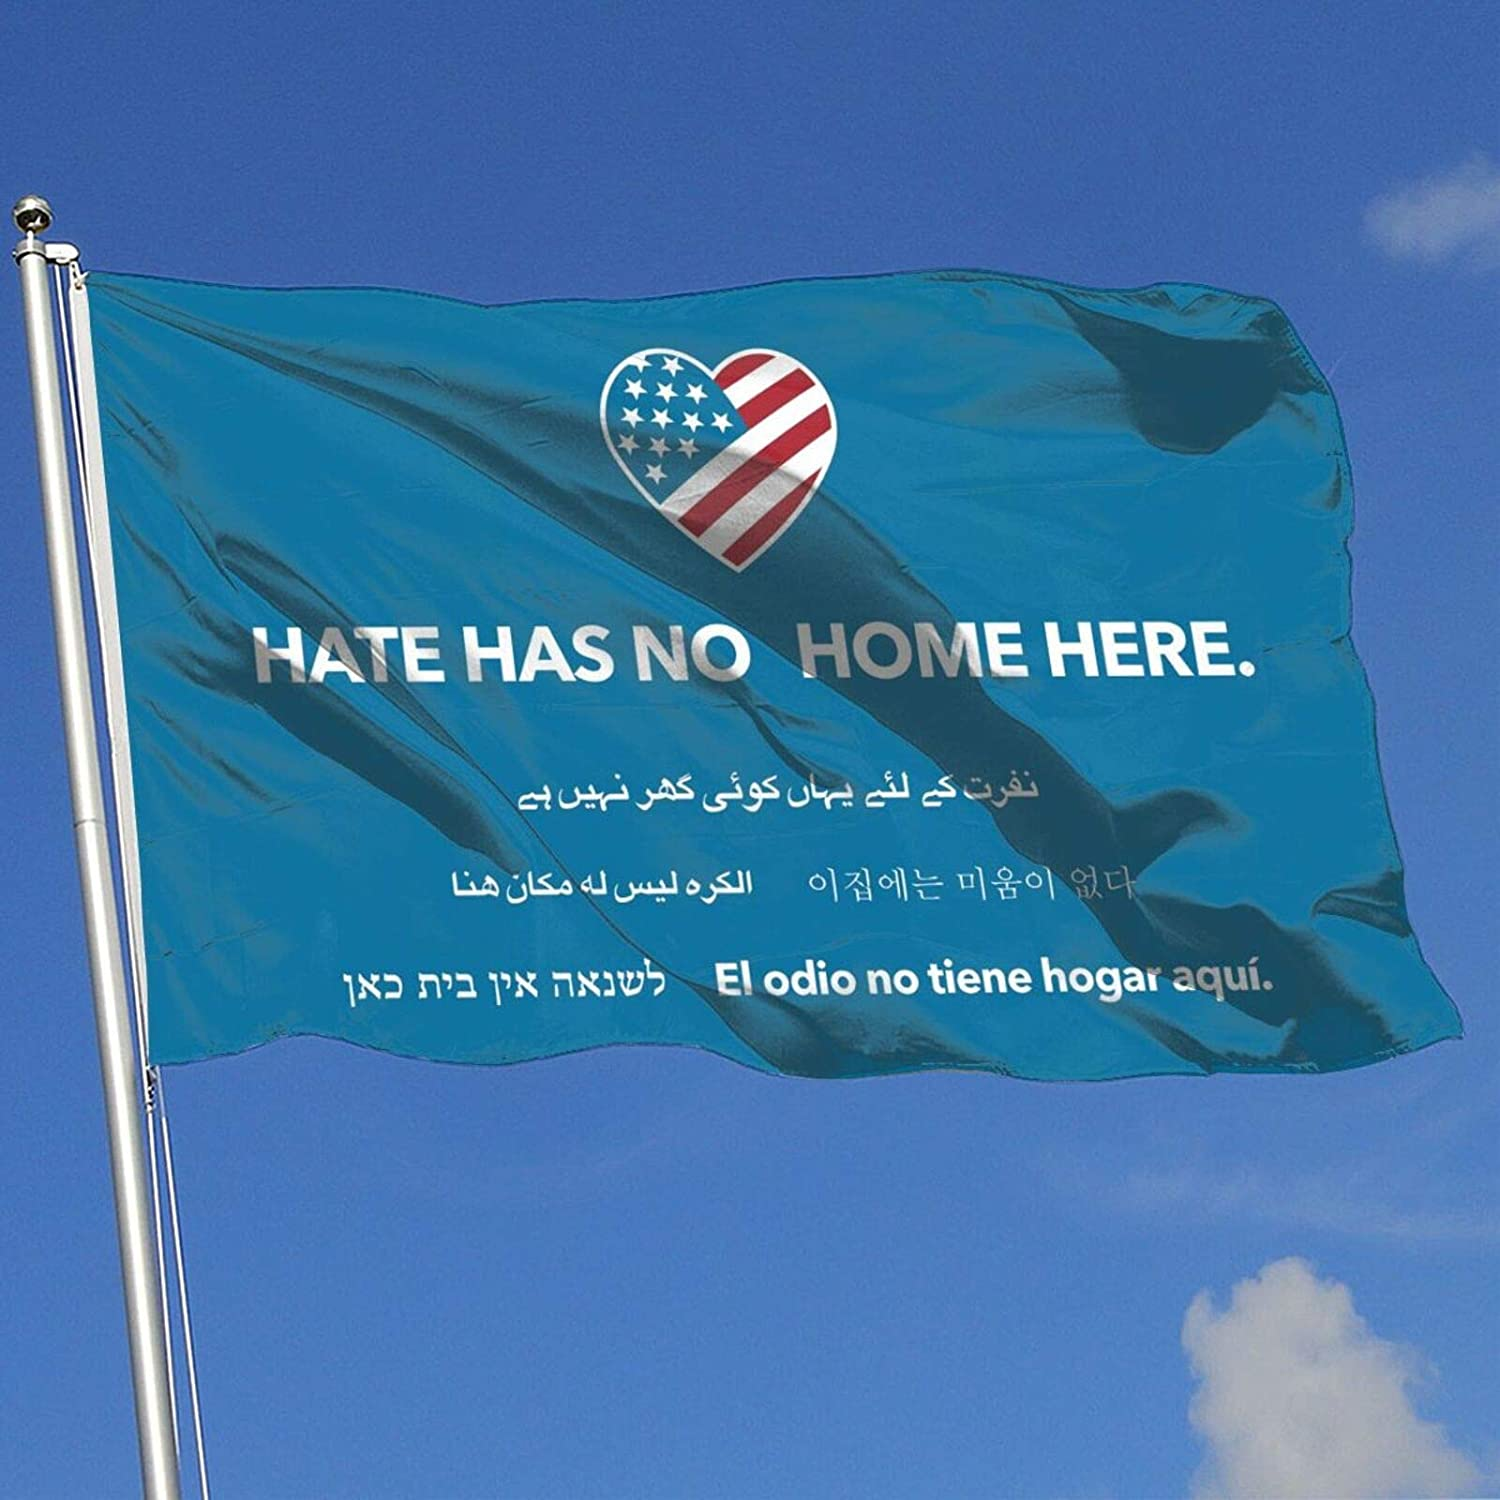 Juhucc Hate Has No Home Here Flag 3x5 Ft American Flag,Outdoor Banner,Family Banner,Garden Banner Black